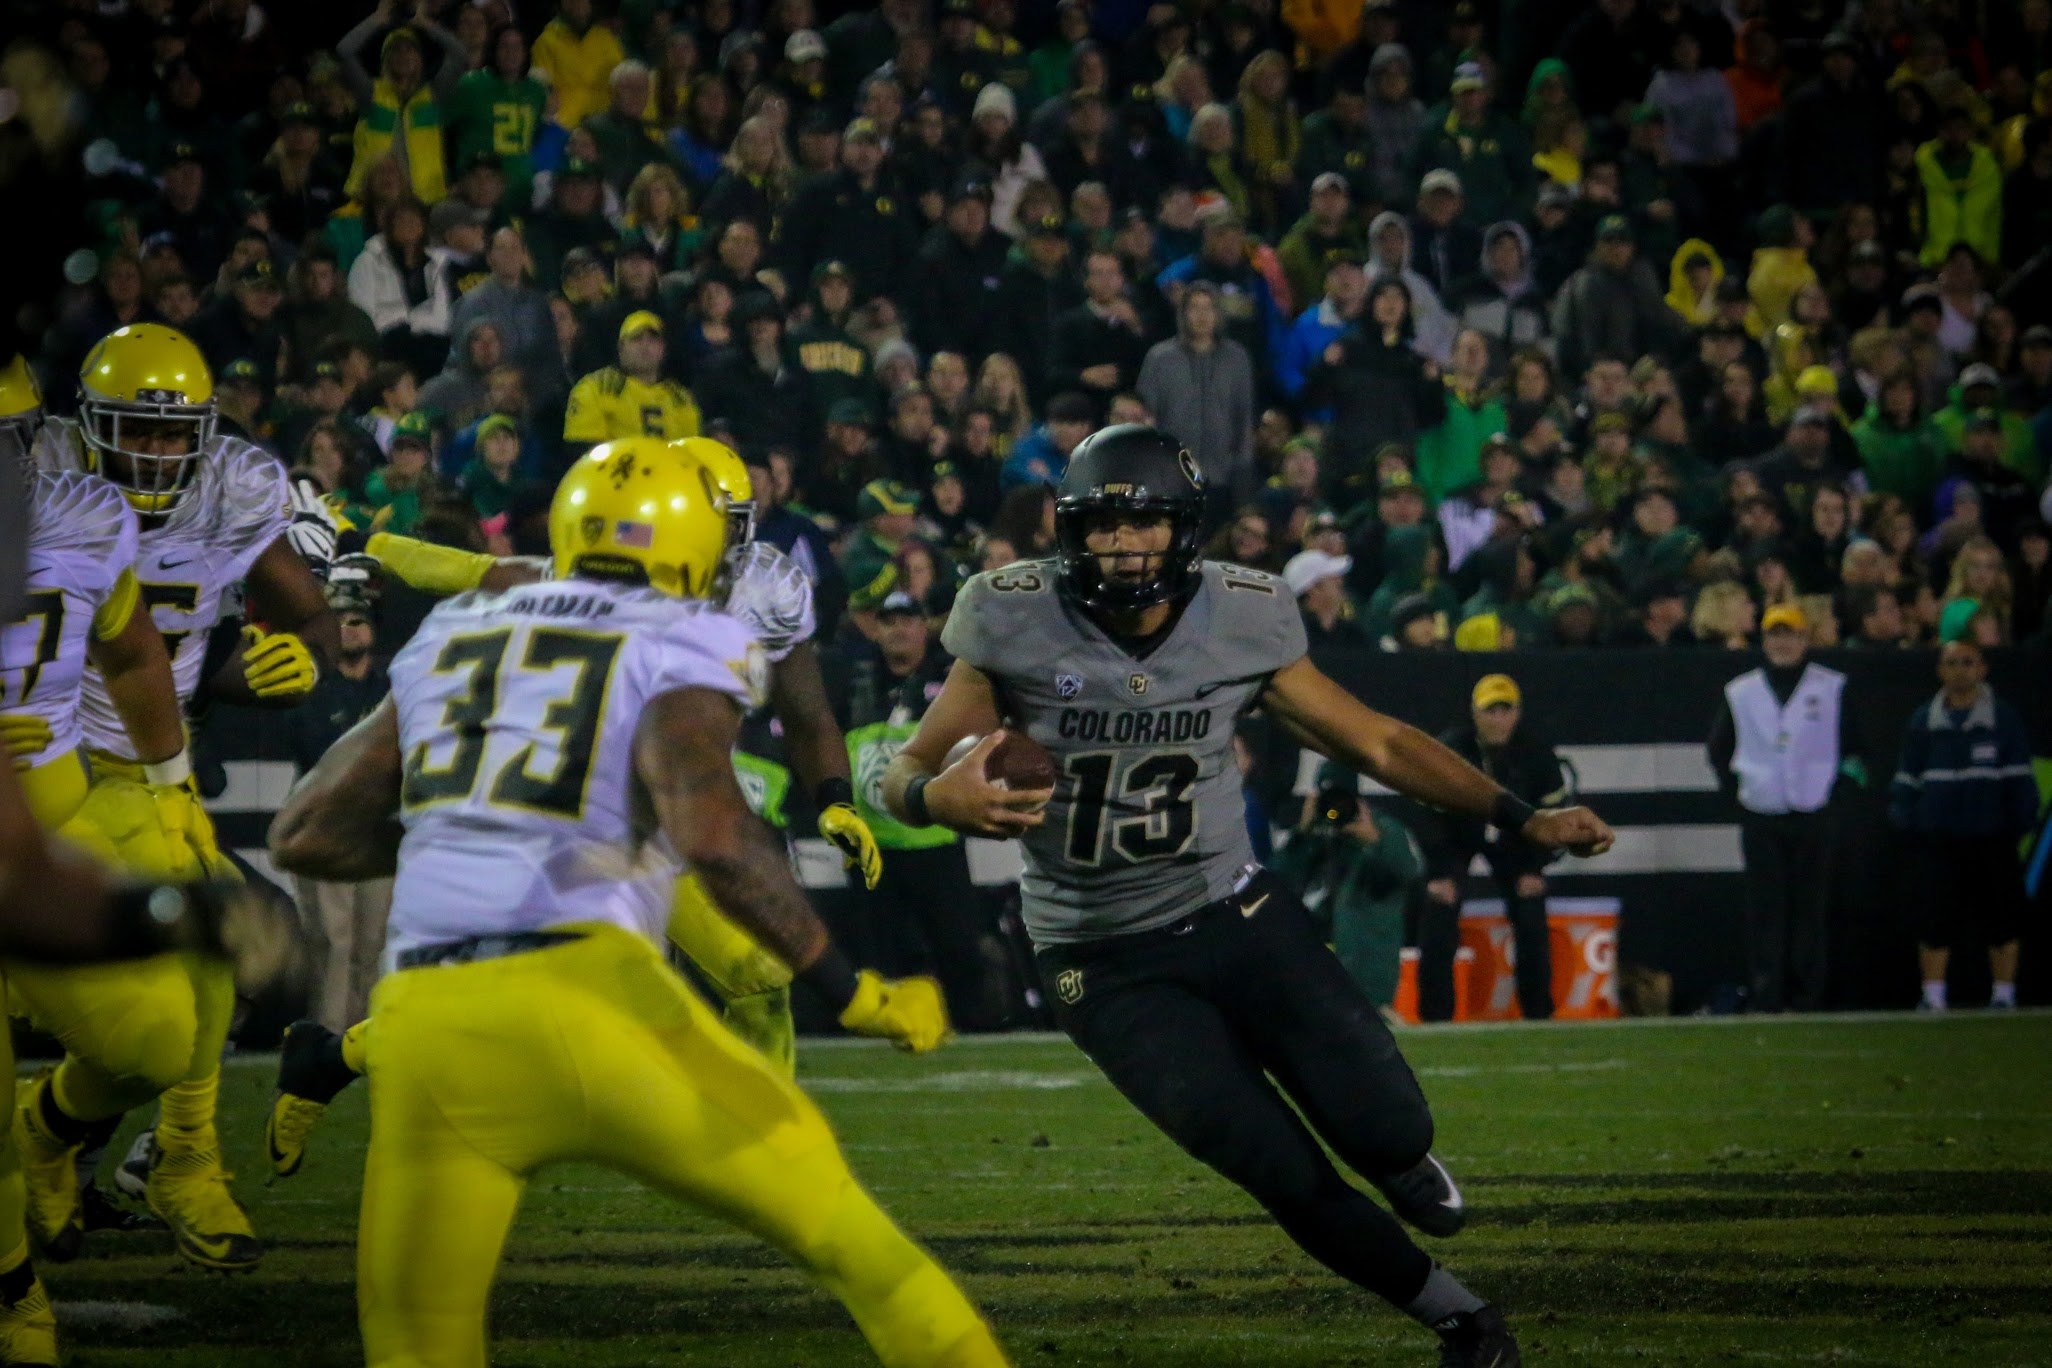 Then-junior quarterback Sefo Liufau rushes the ball into the end zone for his first rushing touchdown of the season during the Buffs' 41-24 loss to the Oregon Ducks at Folsom Field on Sept. 4, 2015. (Robert Hylton/CU Independent File)